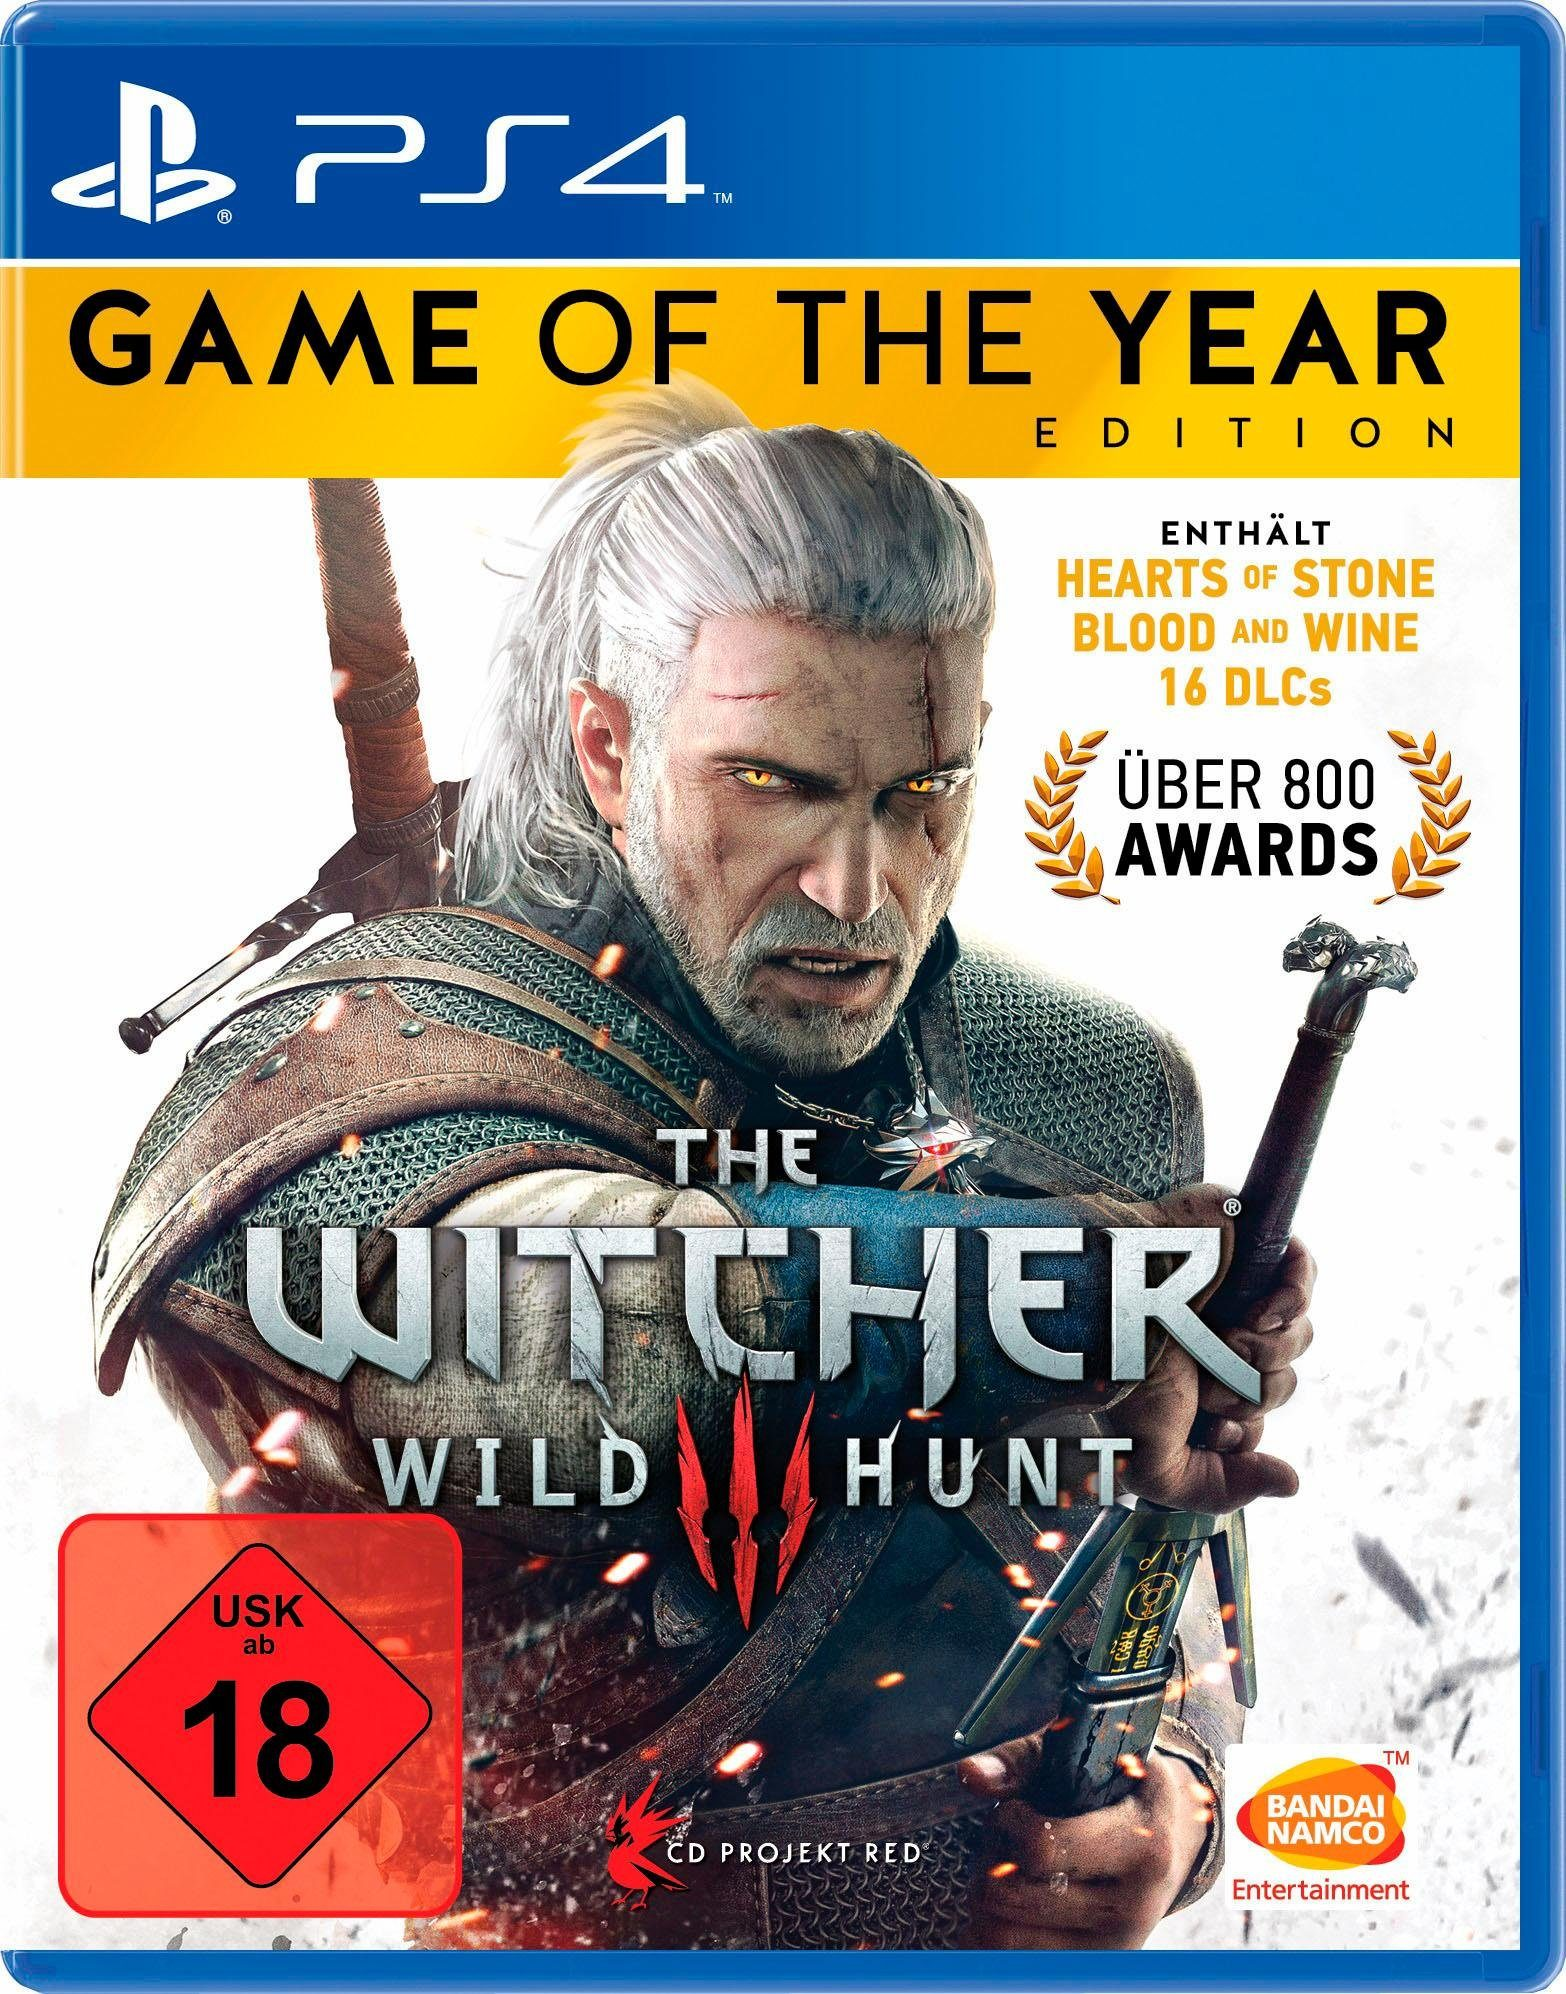 The Witcher3: Wild Hunt – Game of the Year Edition PlayStation 4